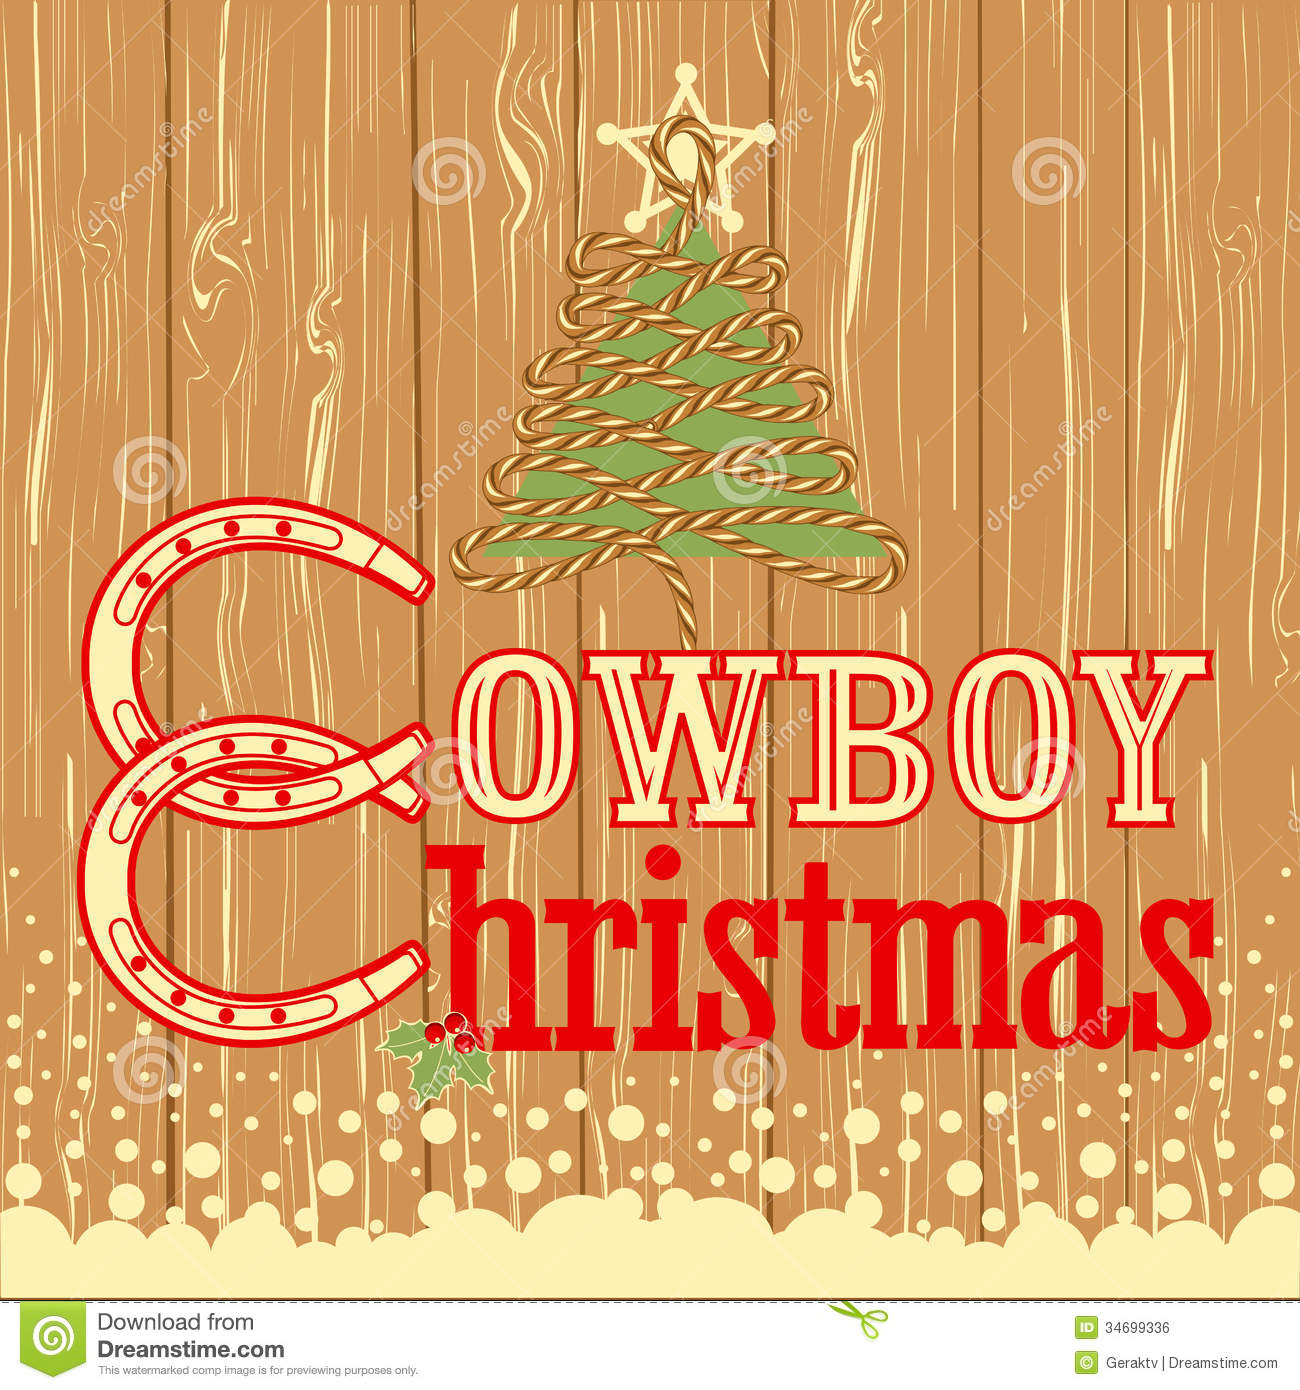 Western Christmas Cards - Texas Christmas Cards